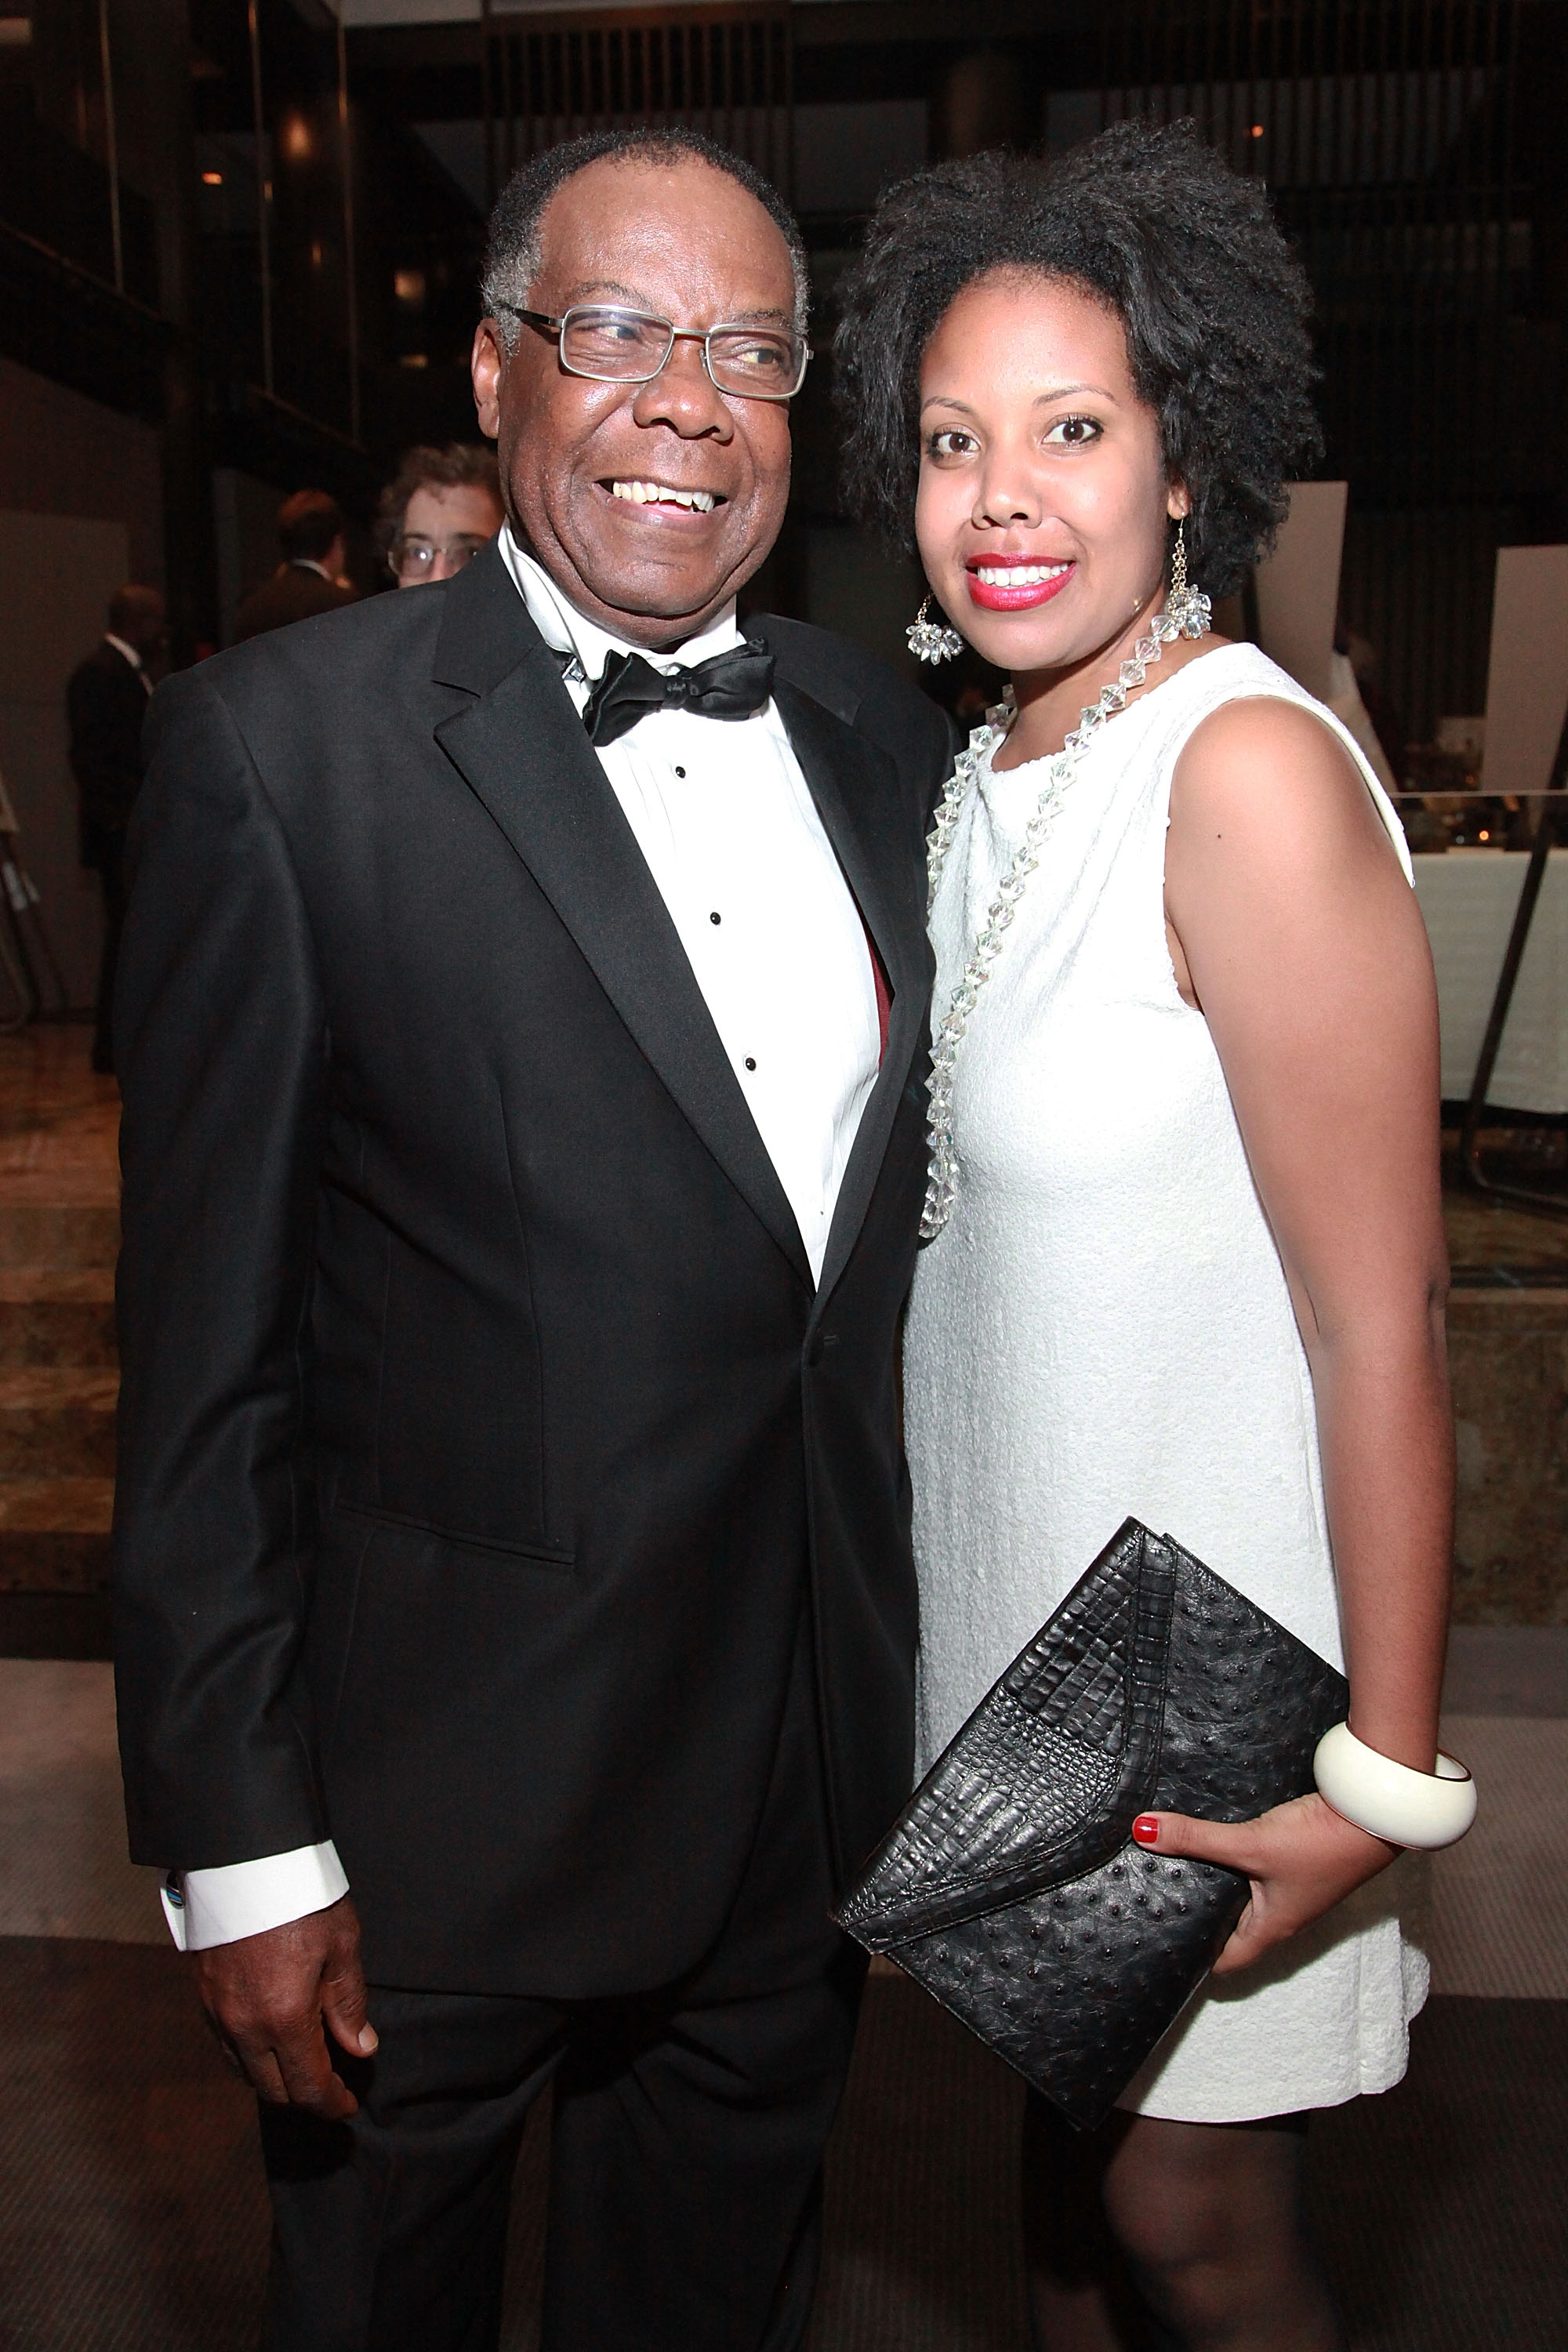 The Africa-America Institute's 28th Annual Awards Dinner Gala